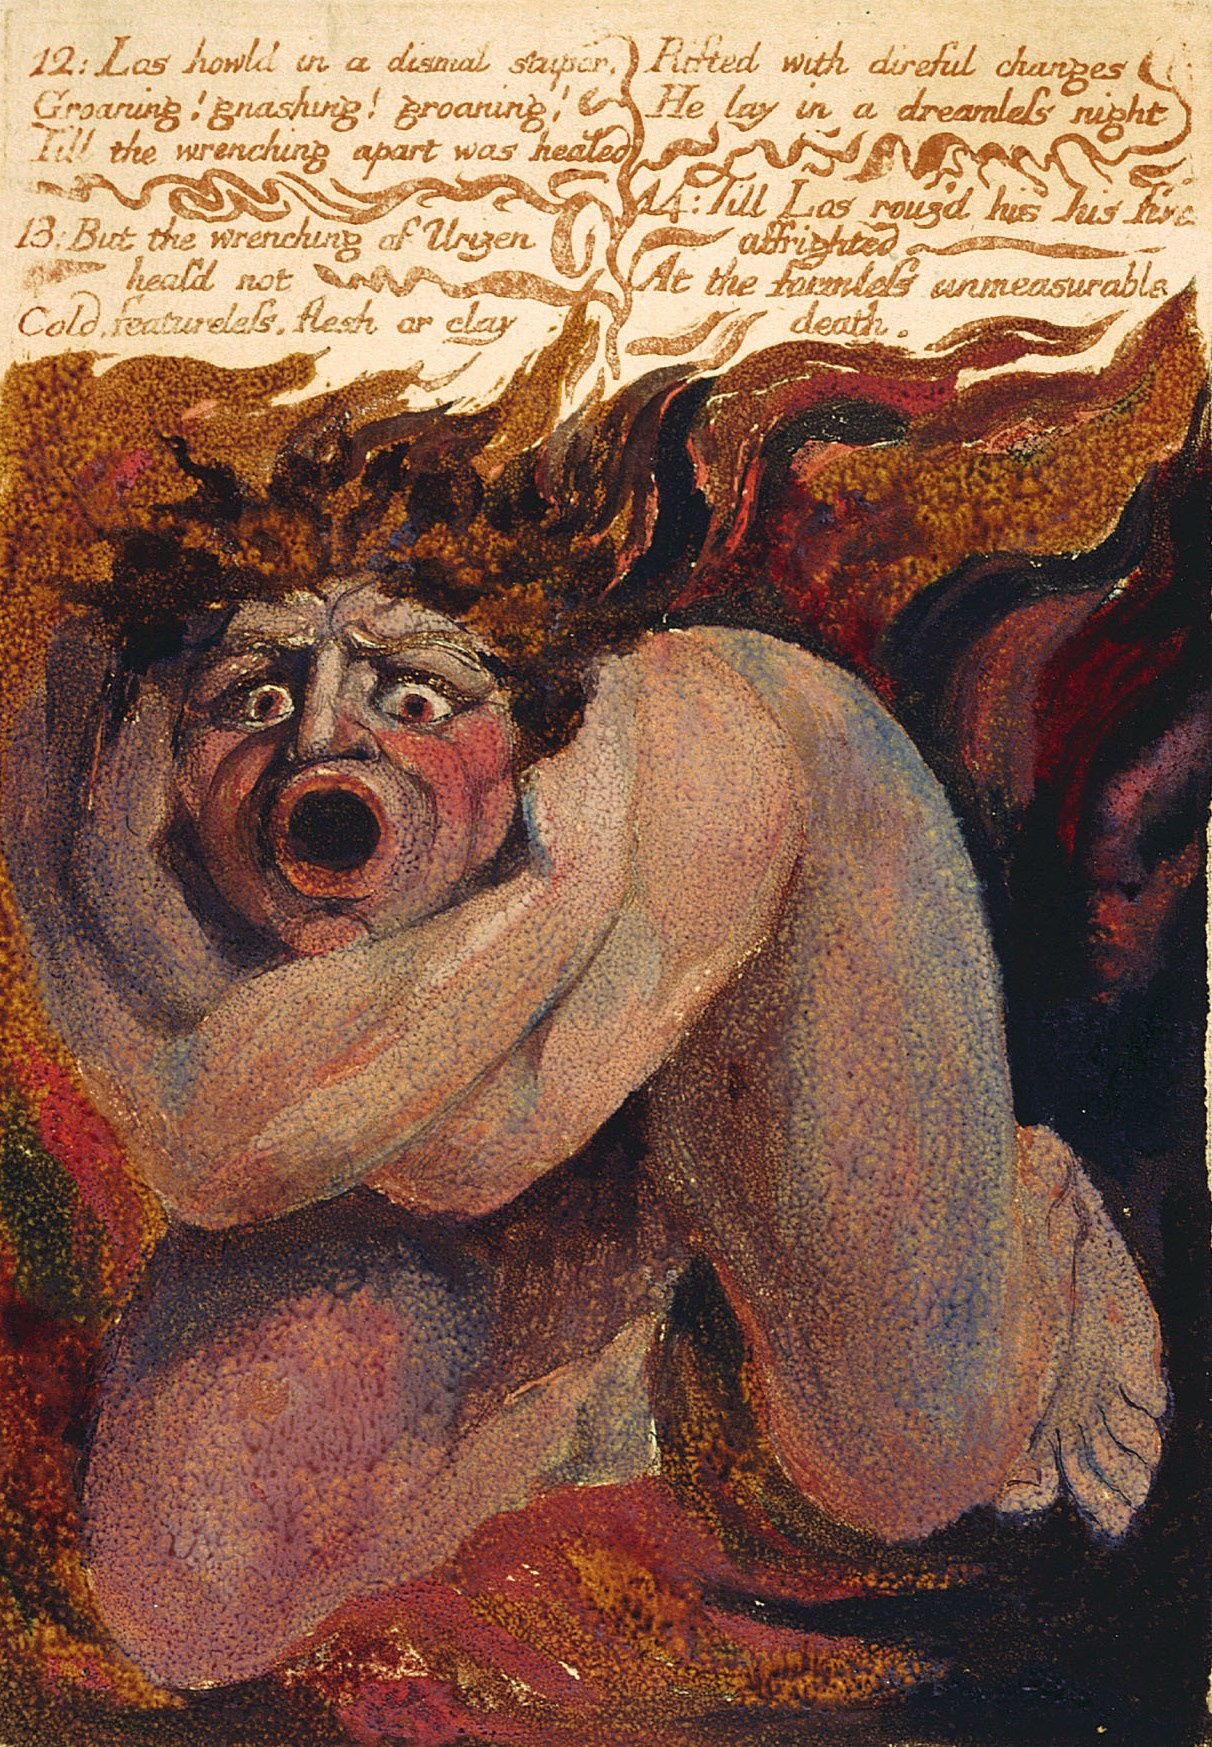 William Blake. The first book Urizen. Los in horror